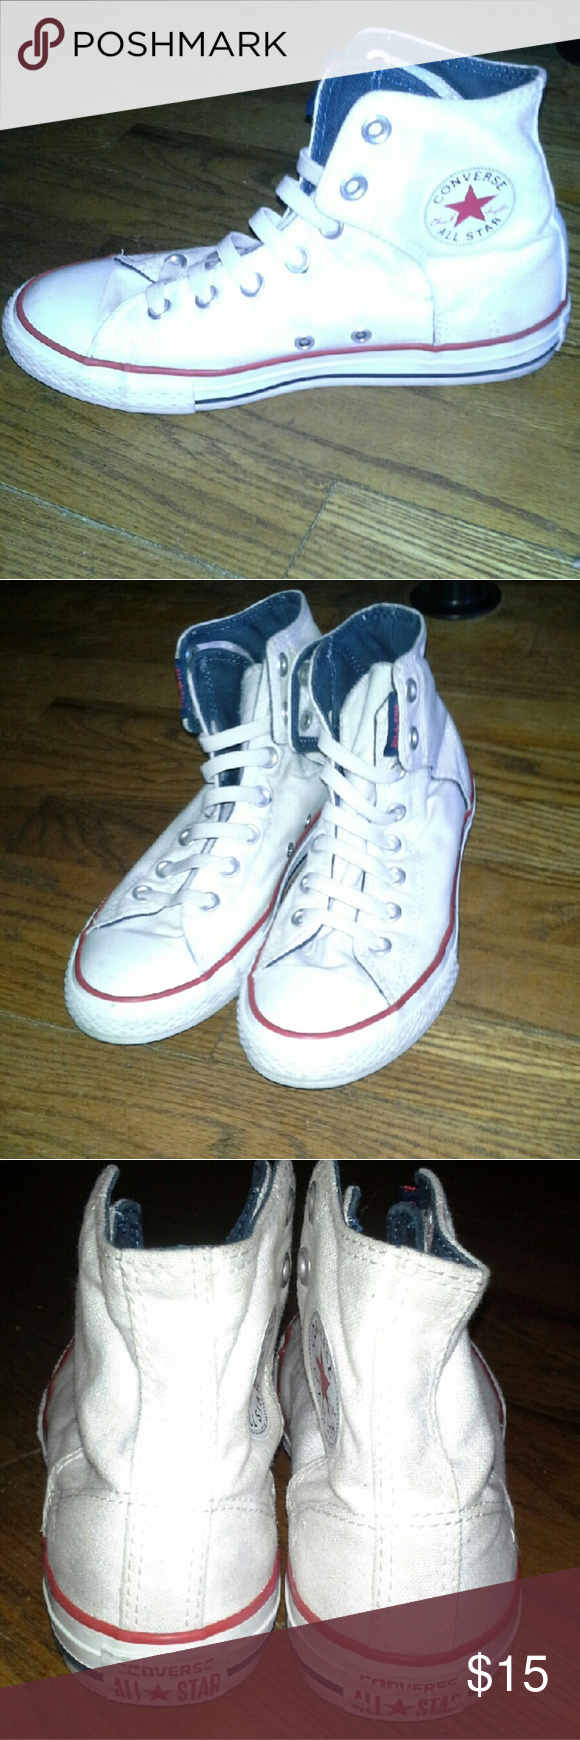 bbc724a140fa CLOSET CLOSING Converse 4 Youth 6 Women +Great used condition +All Star  high tops +Normal wear (some marks